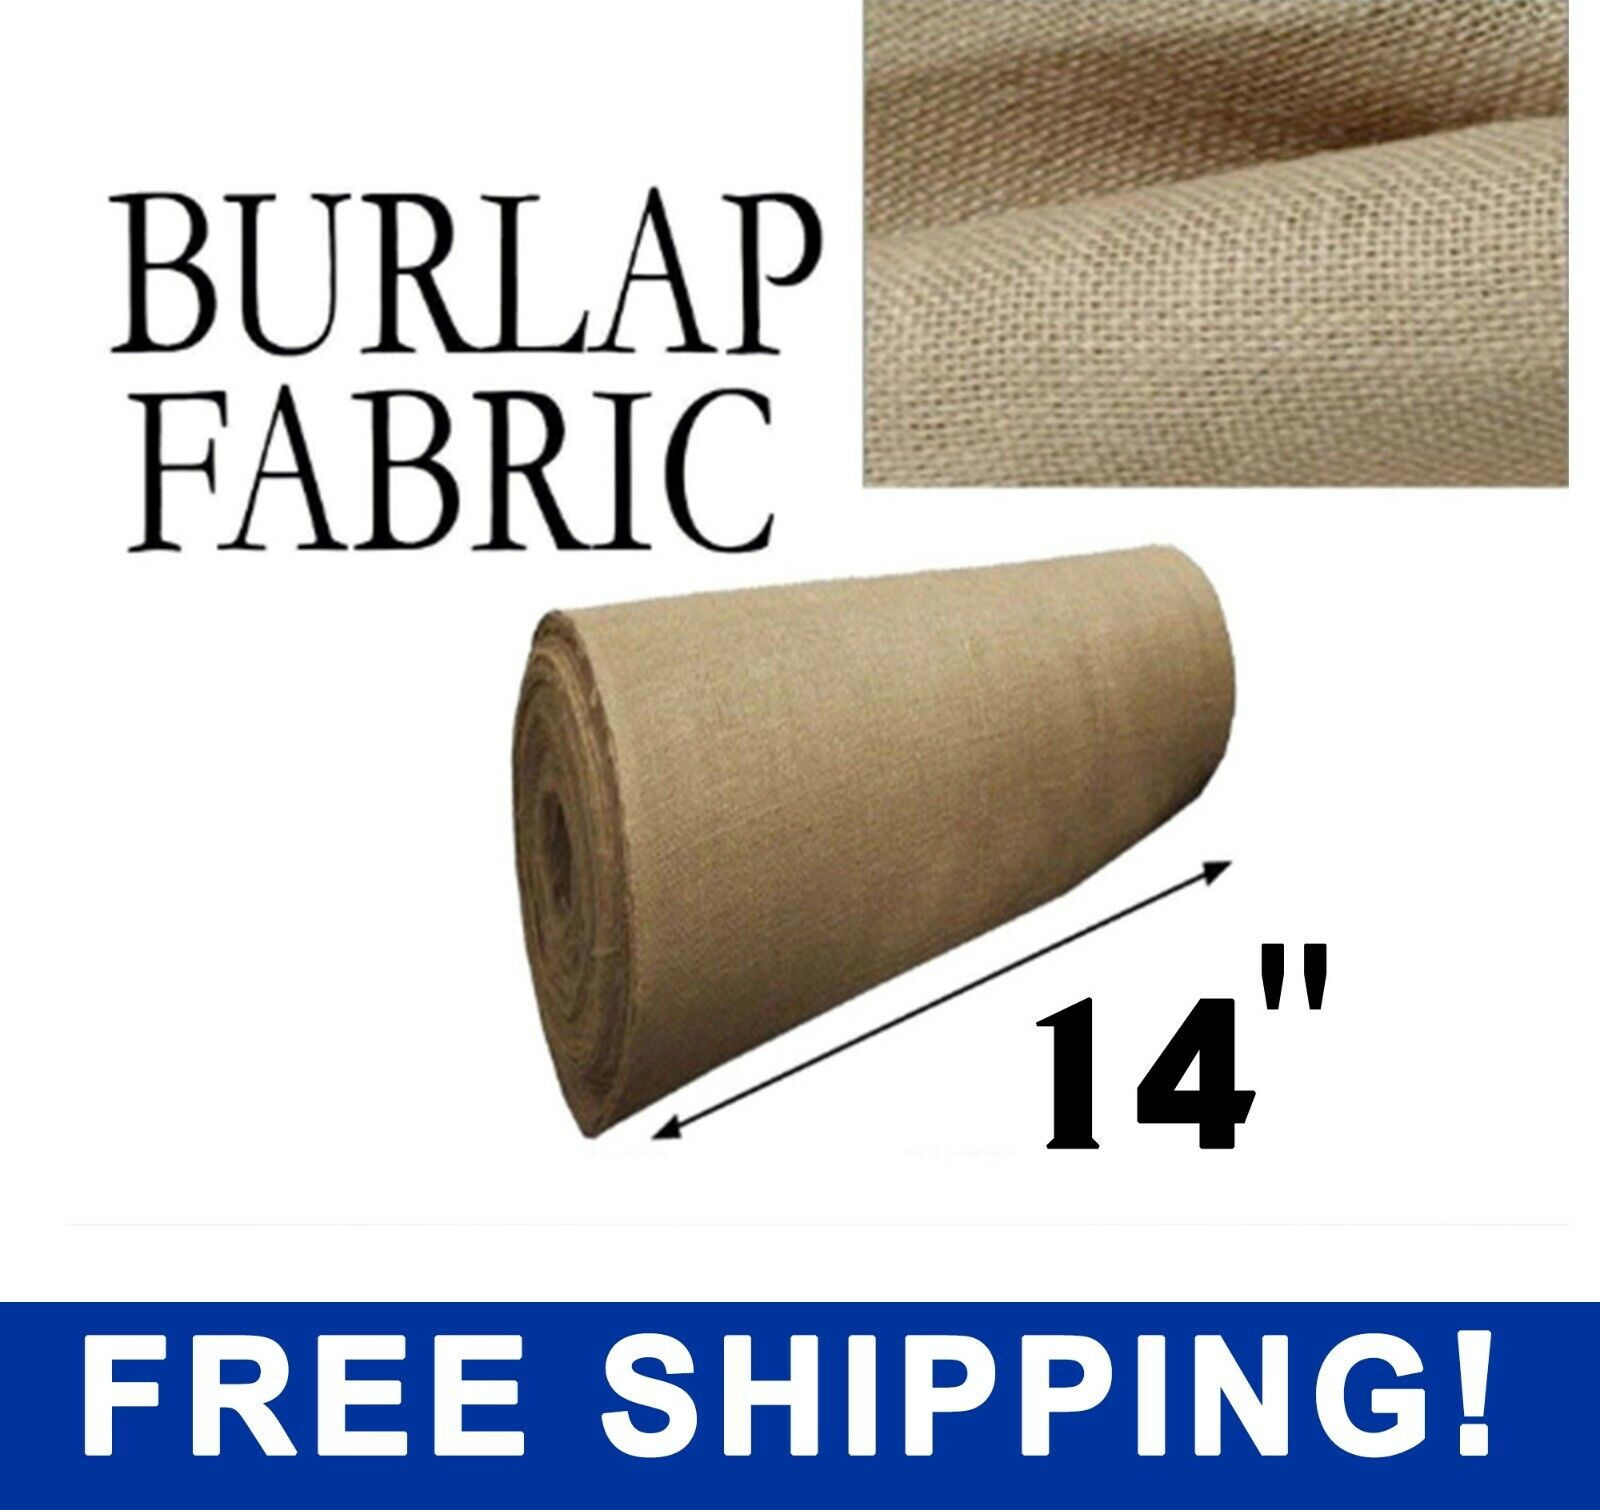 "Burlap Fabric Natural - 14"" Wide - Sold By The Yard - Free S"